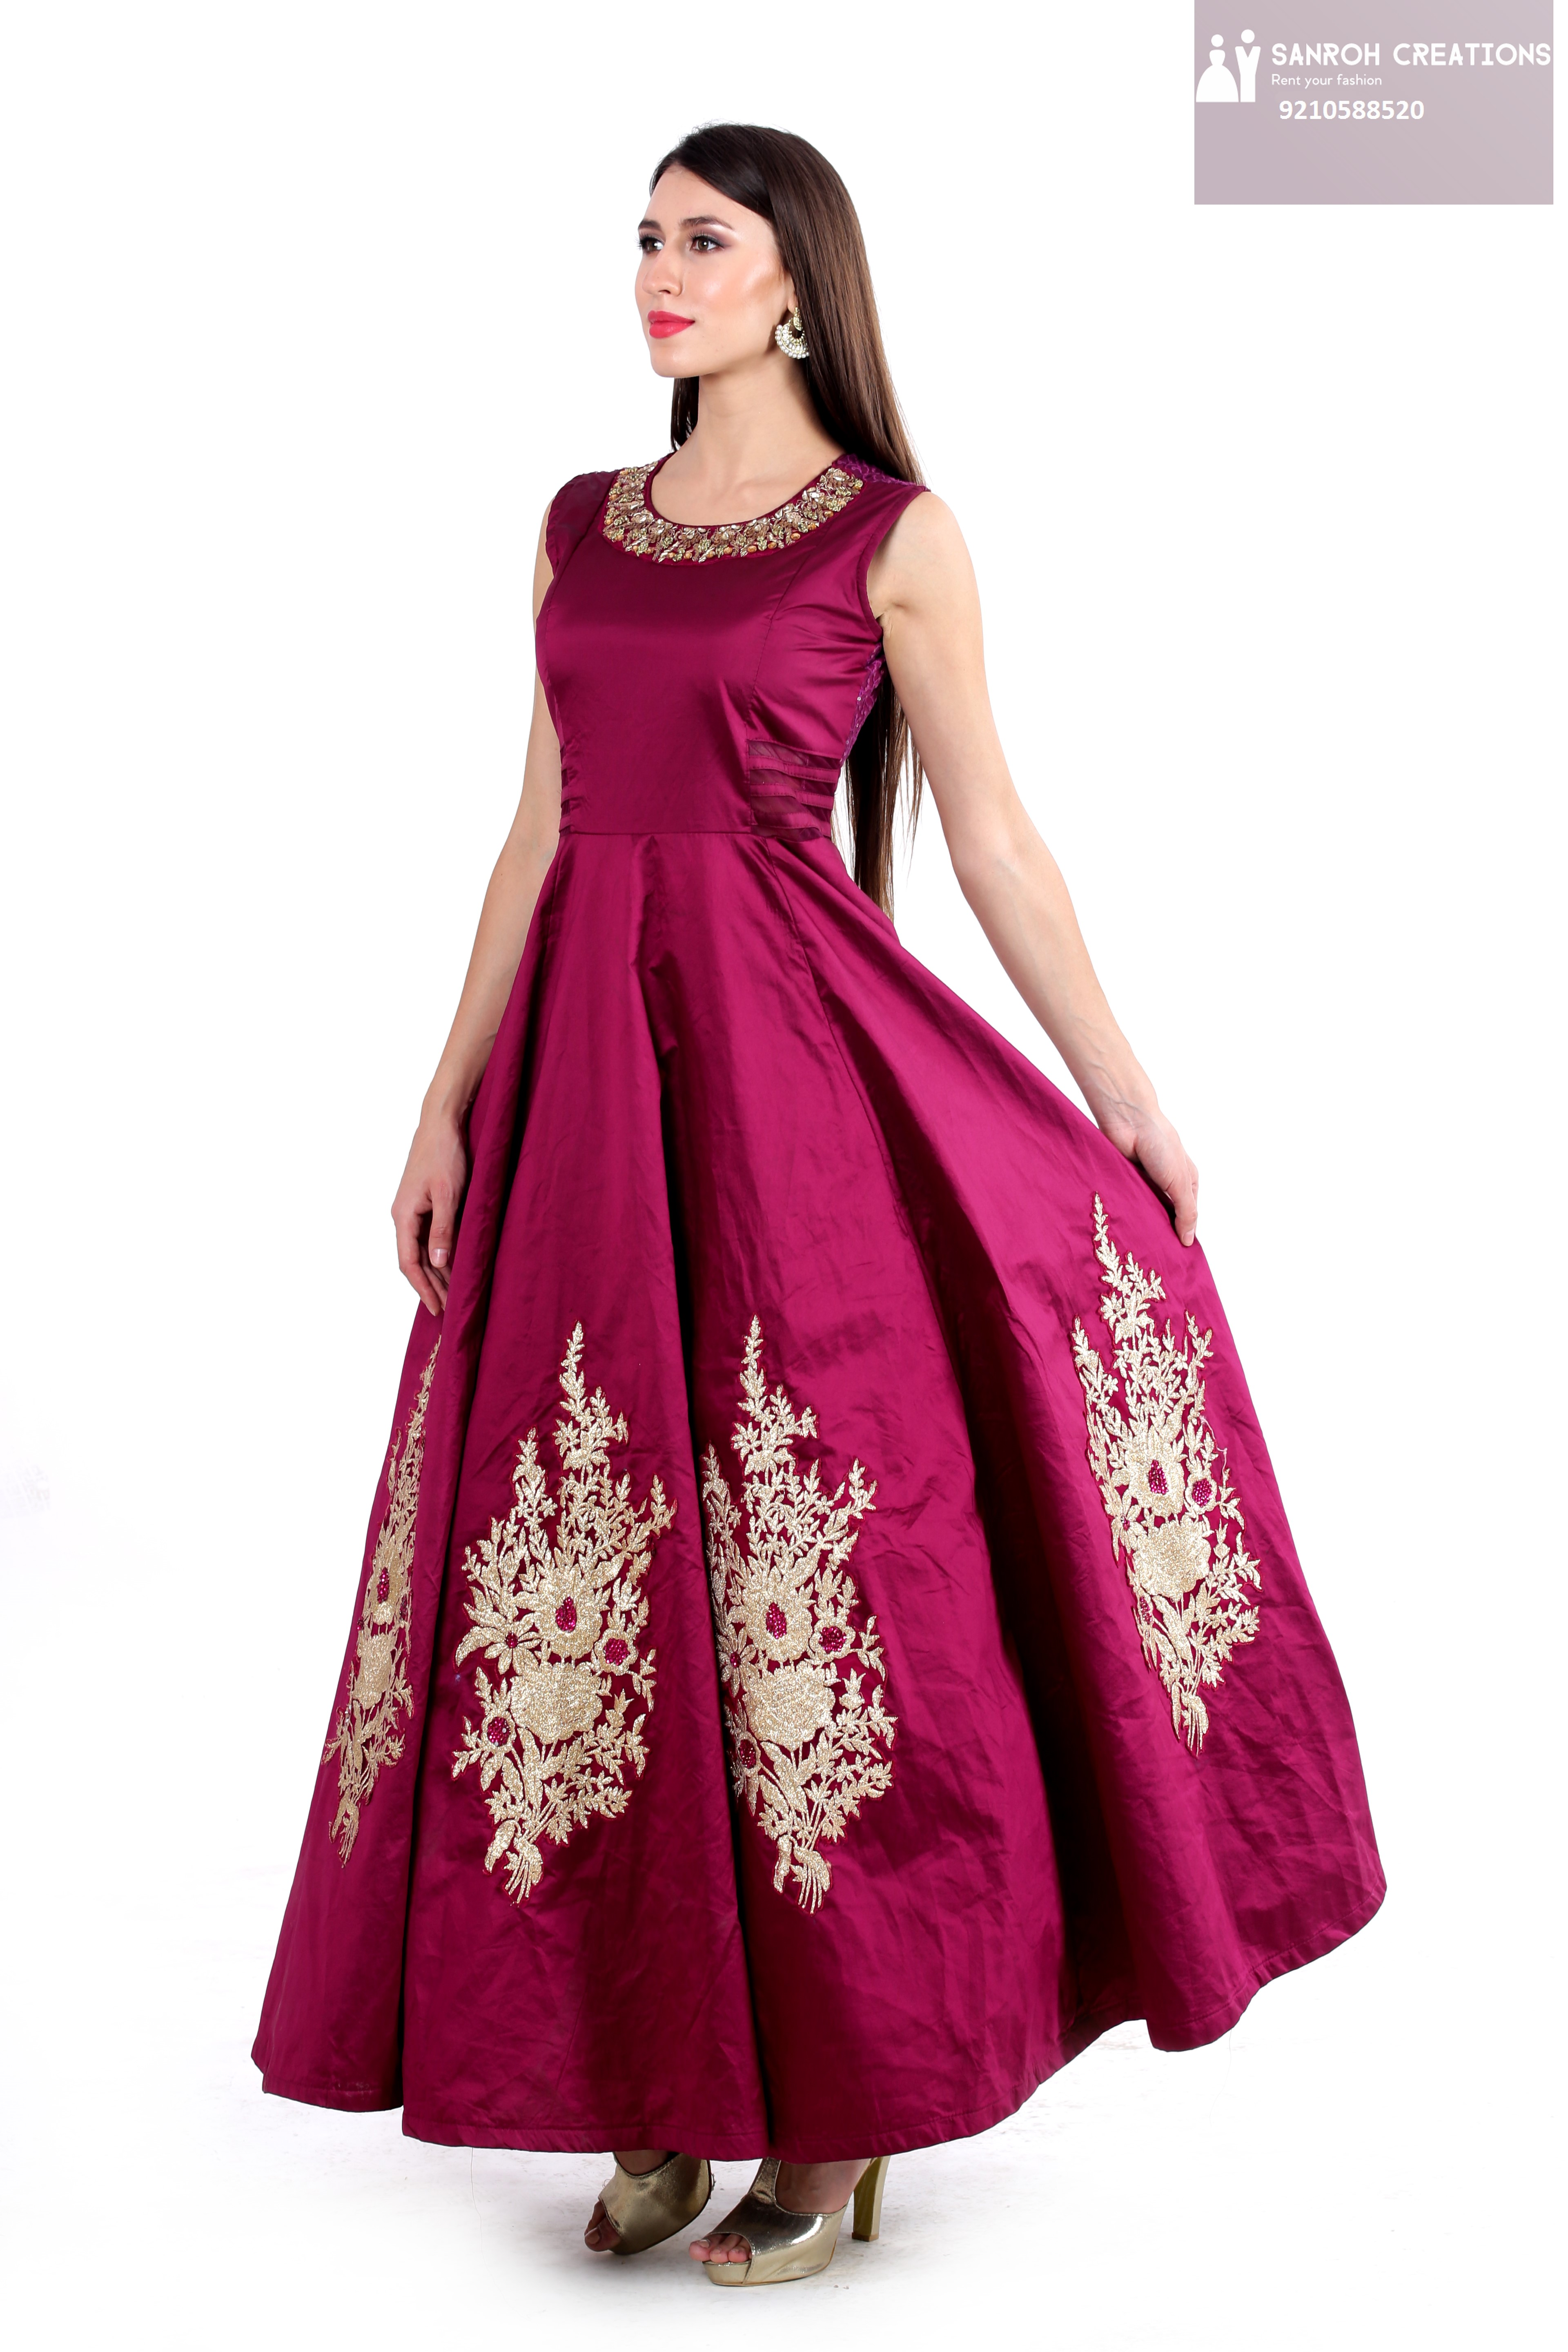 GOWN ON RENT IN UDYOG VIHAR